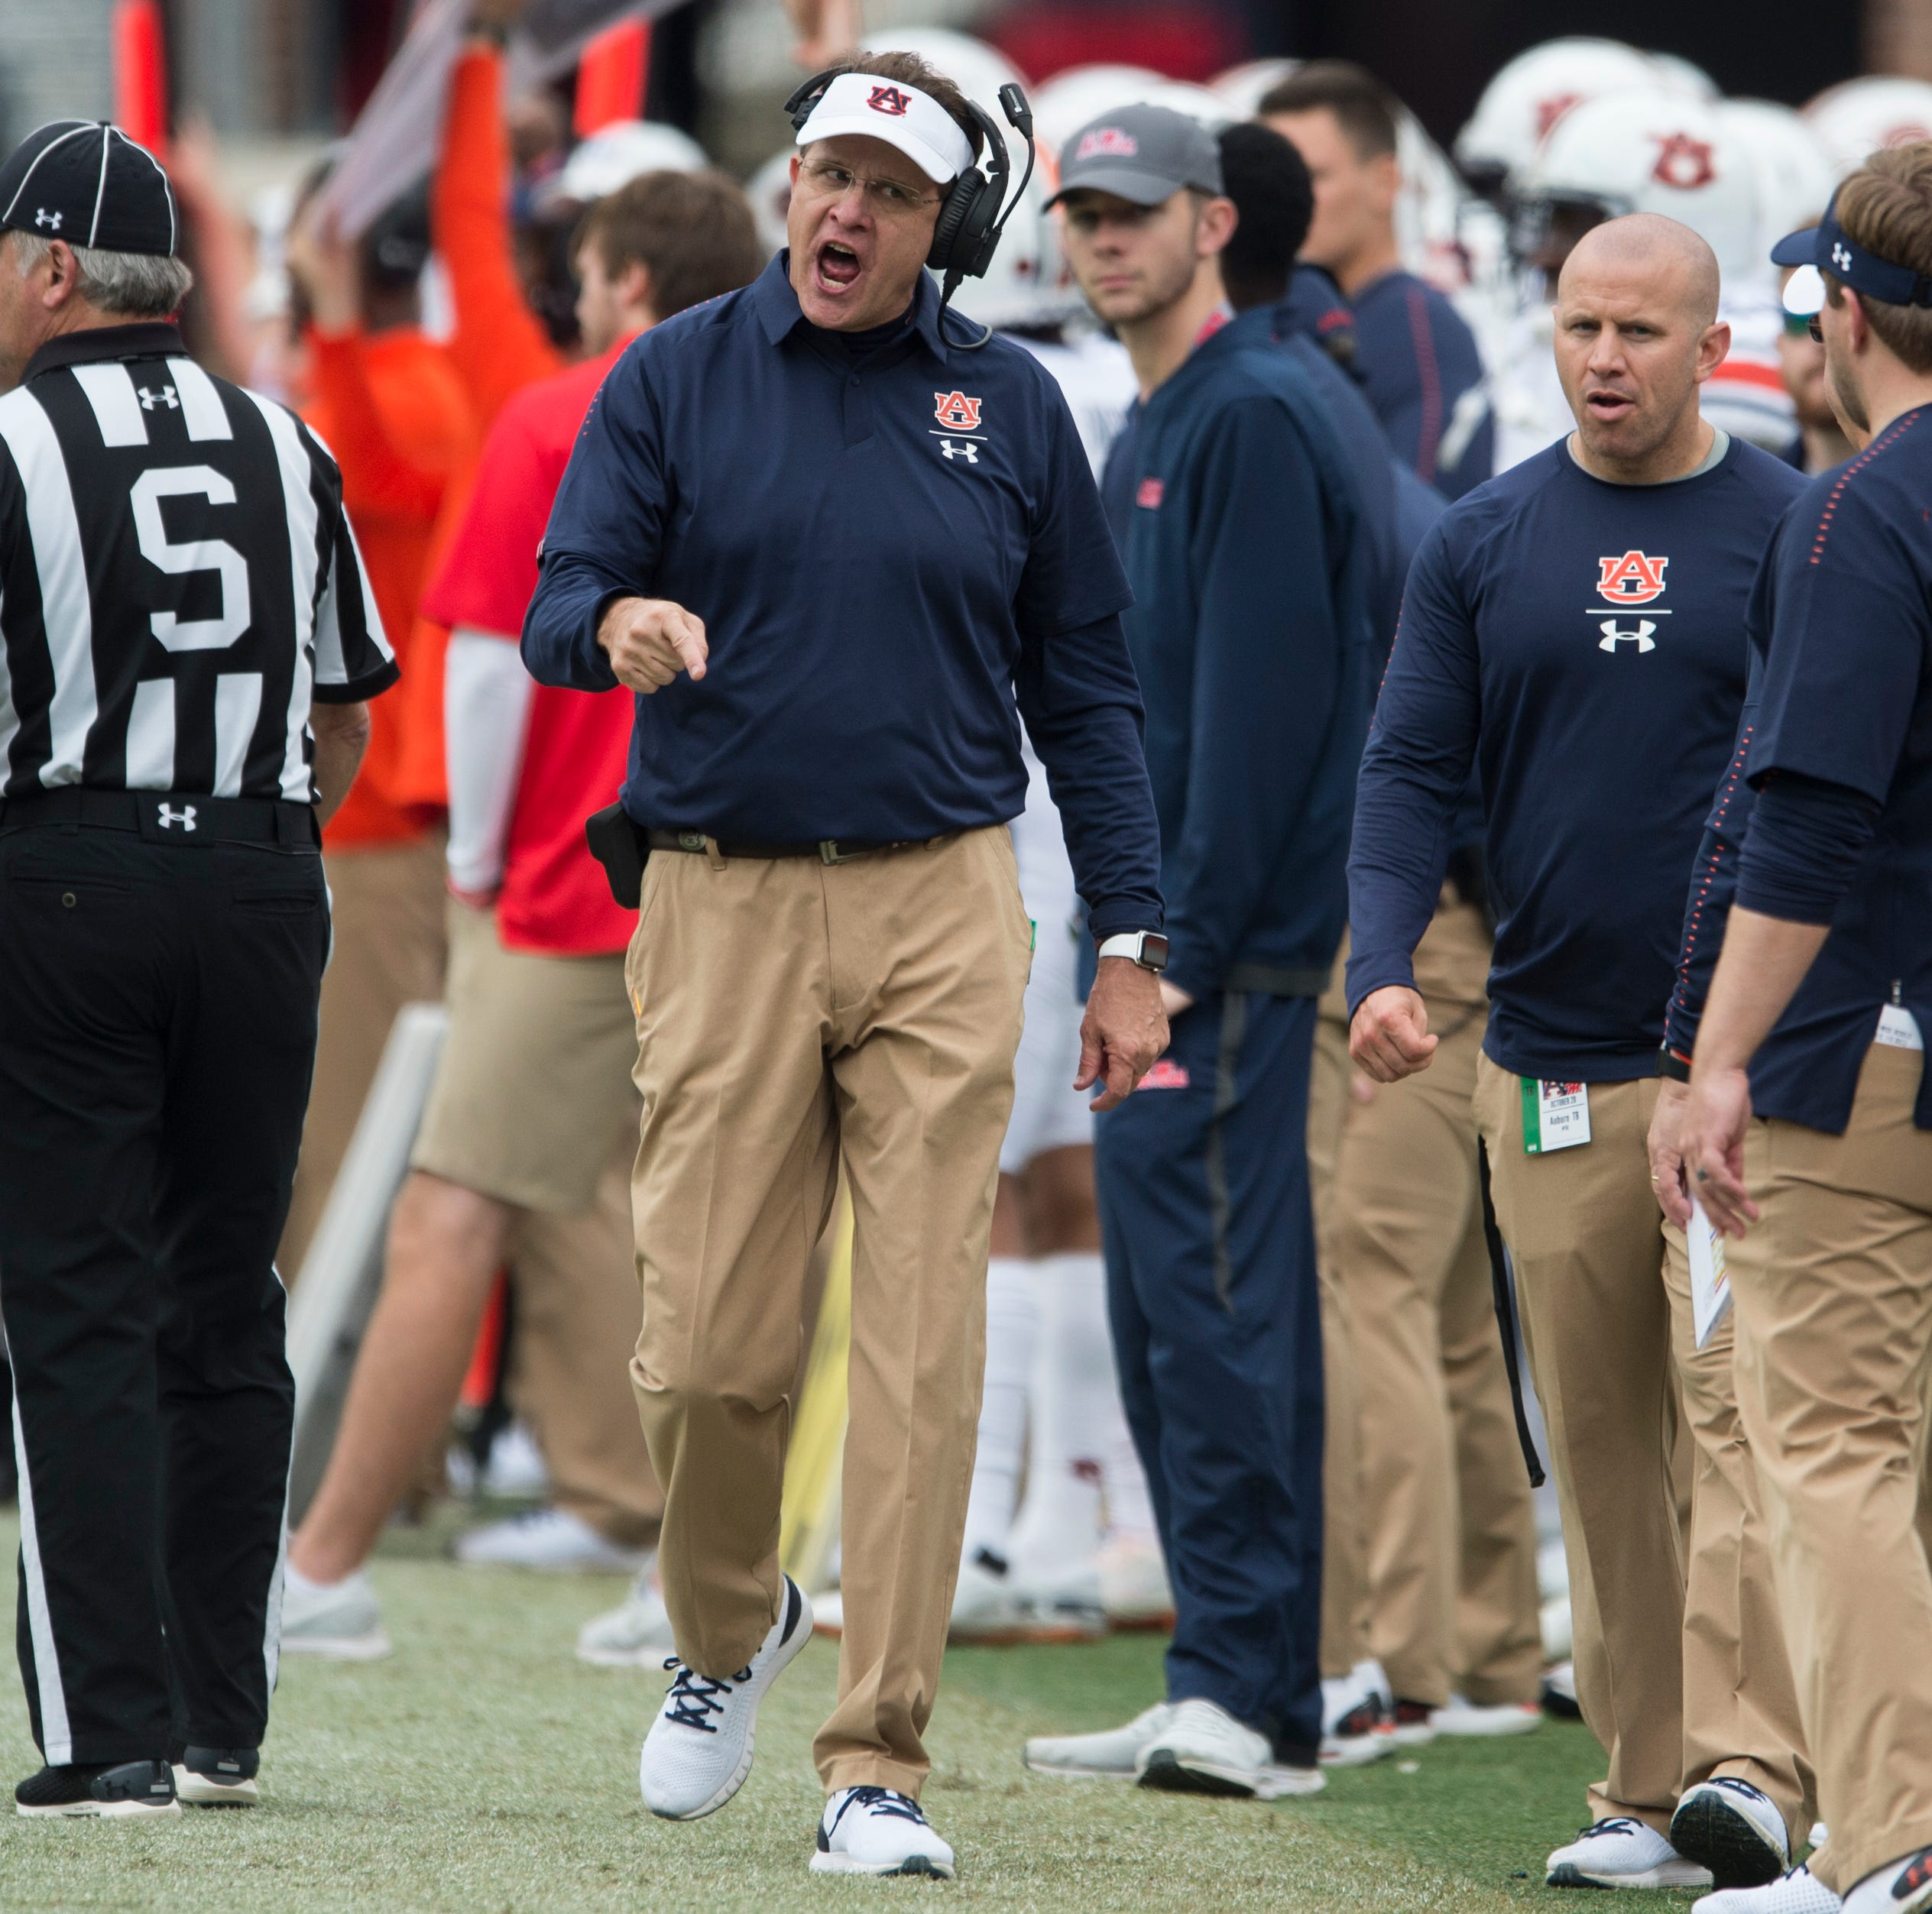 Malzahn's problems include giving up in the Iron Bowl too quickly